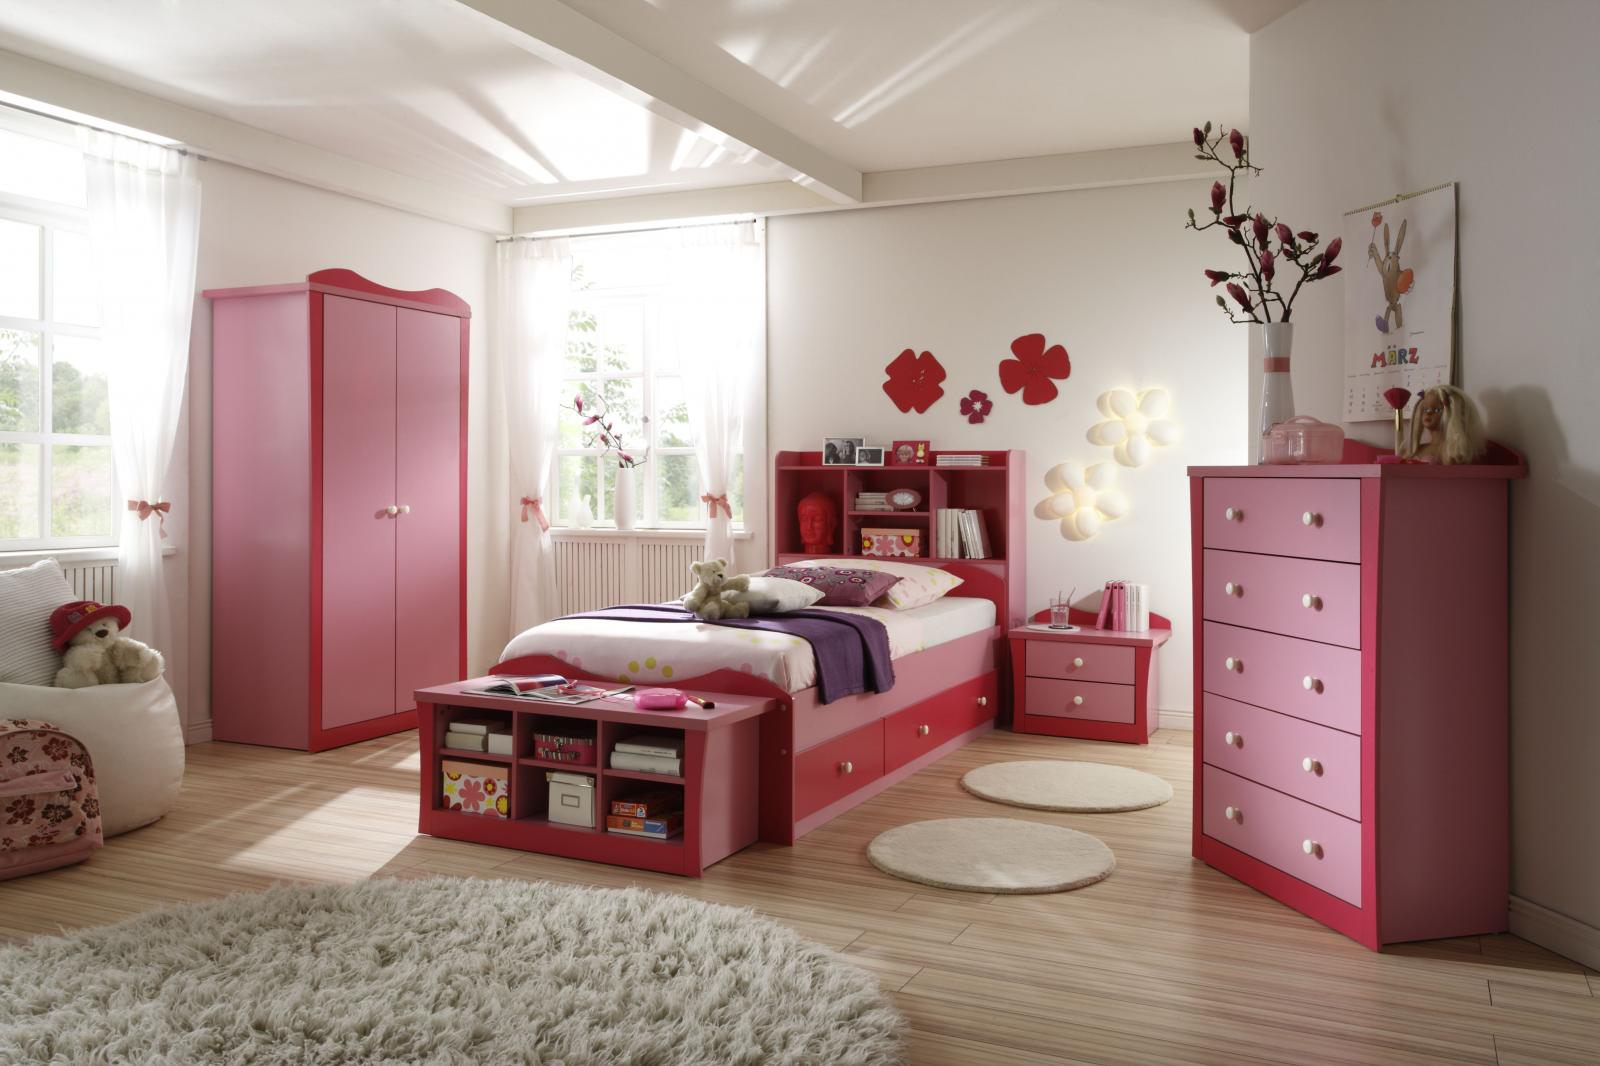 KOREAN BEDROOM DECORATION FOR GIRLS